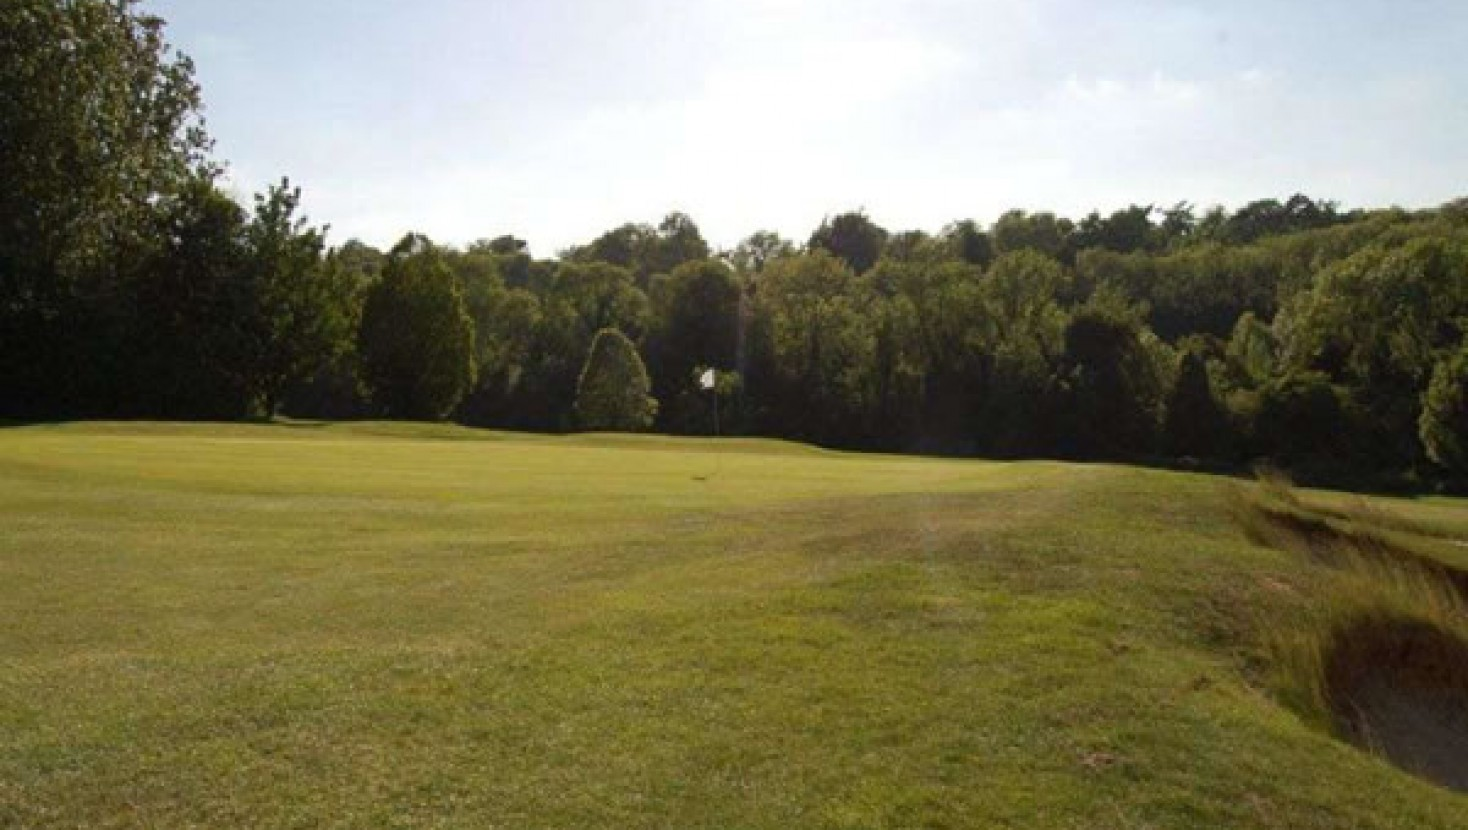 Footgolf Frenzy's Guide to Footgolf in Kent